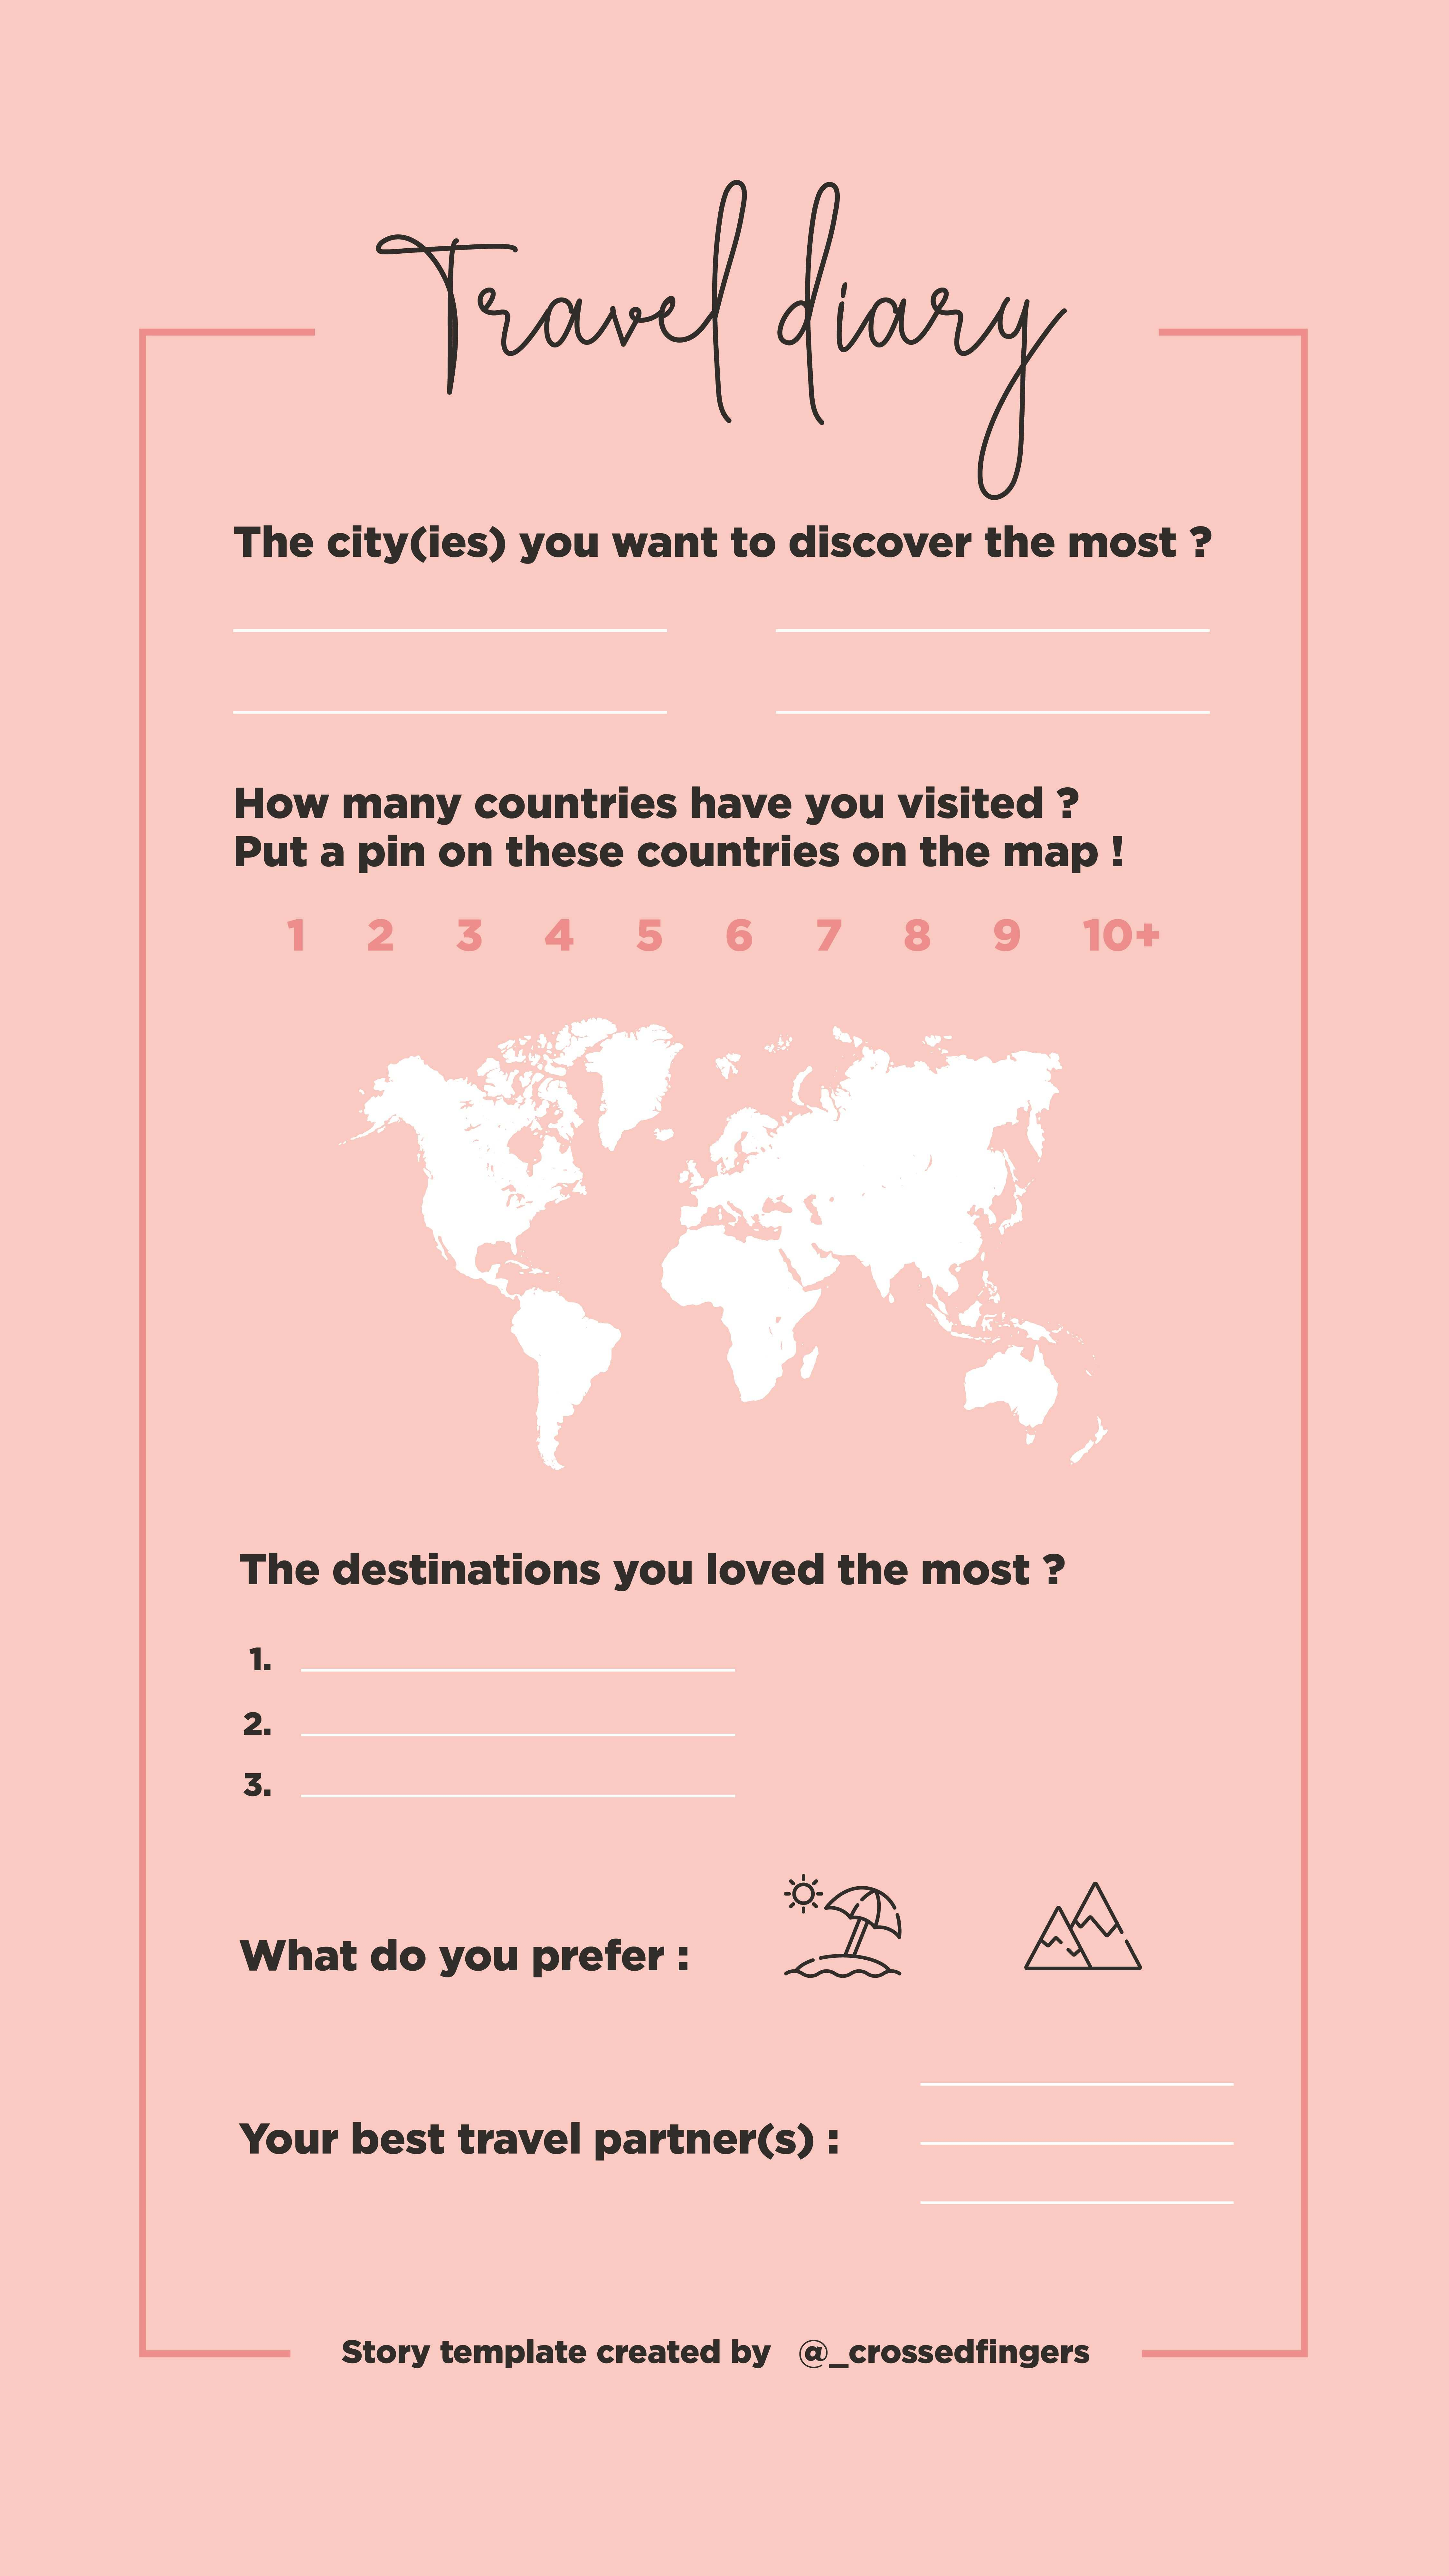 Template Instastory Travel Diary Template Instagram Story Travel Travelover Storytemplates Diary Template Travel Instagram Travel Diary